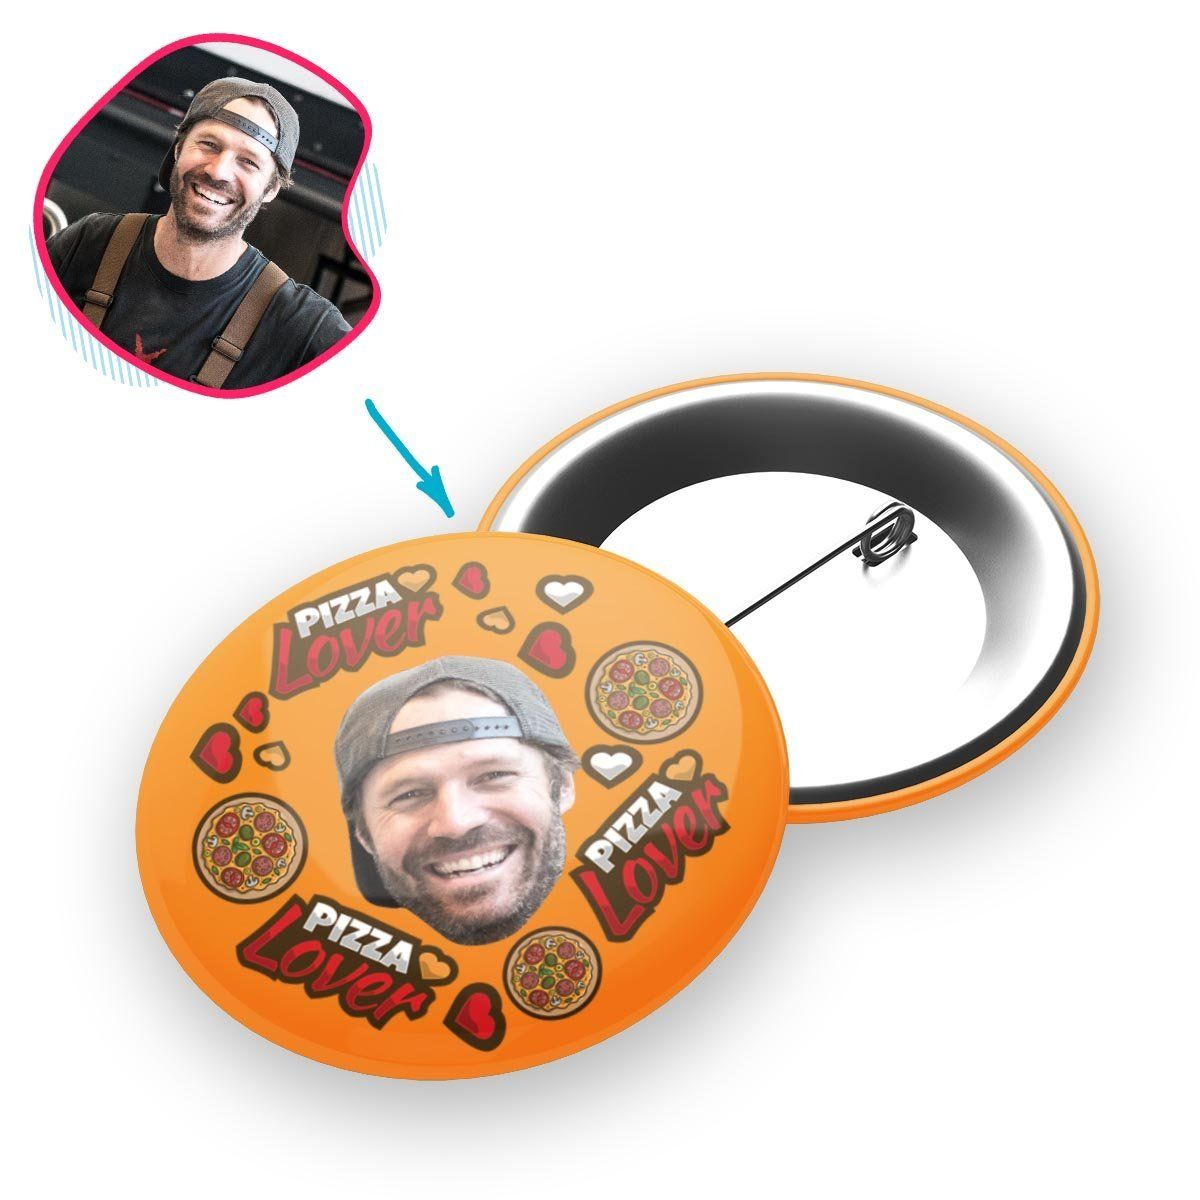 orange Pizza Lover pin personalized with photo of face printed on it